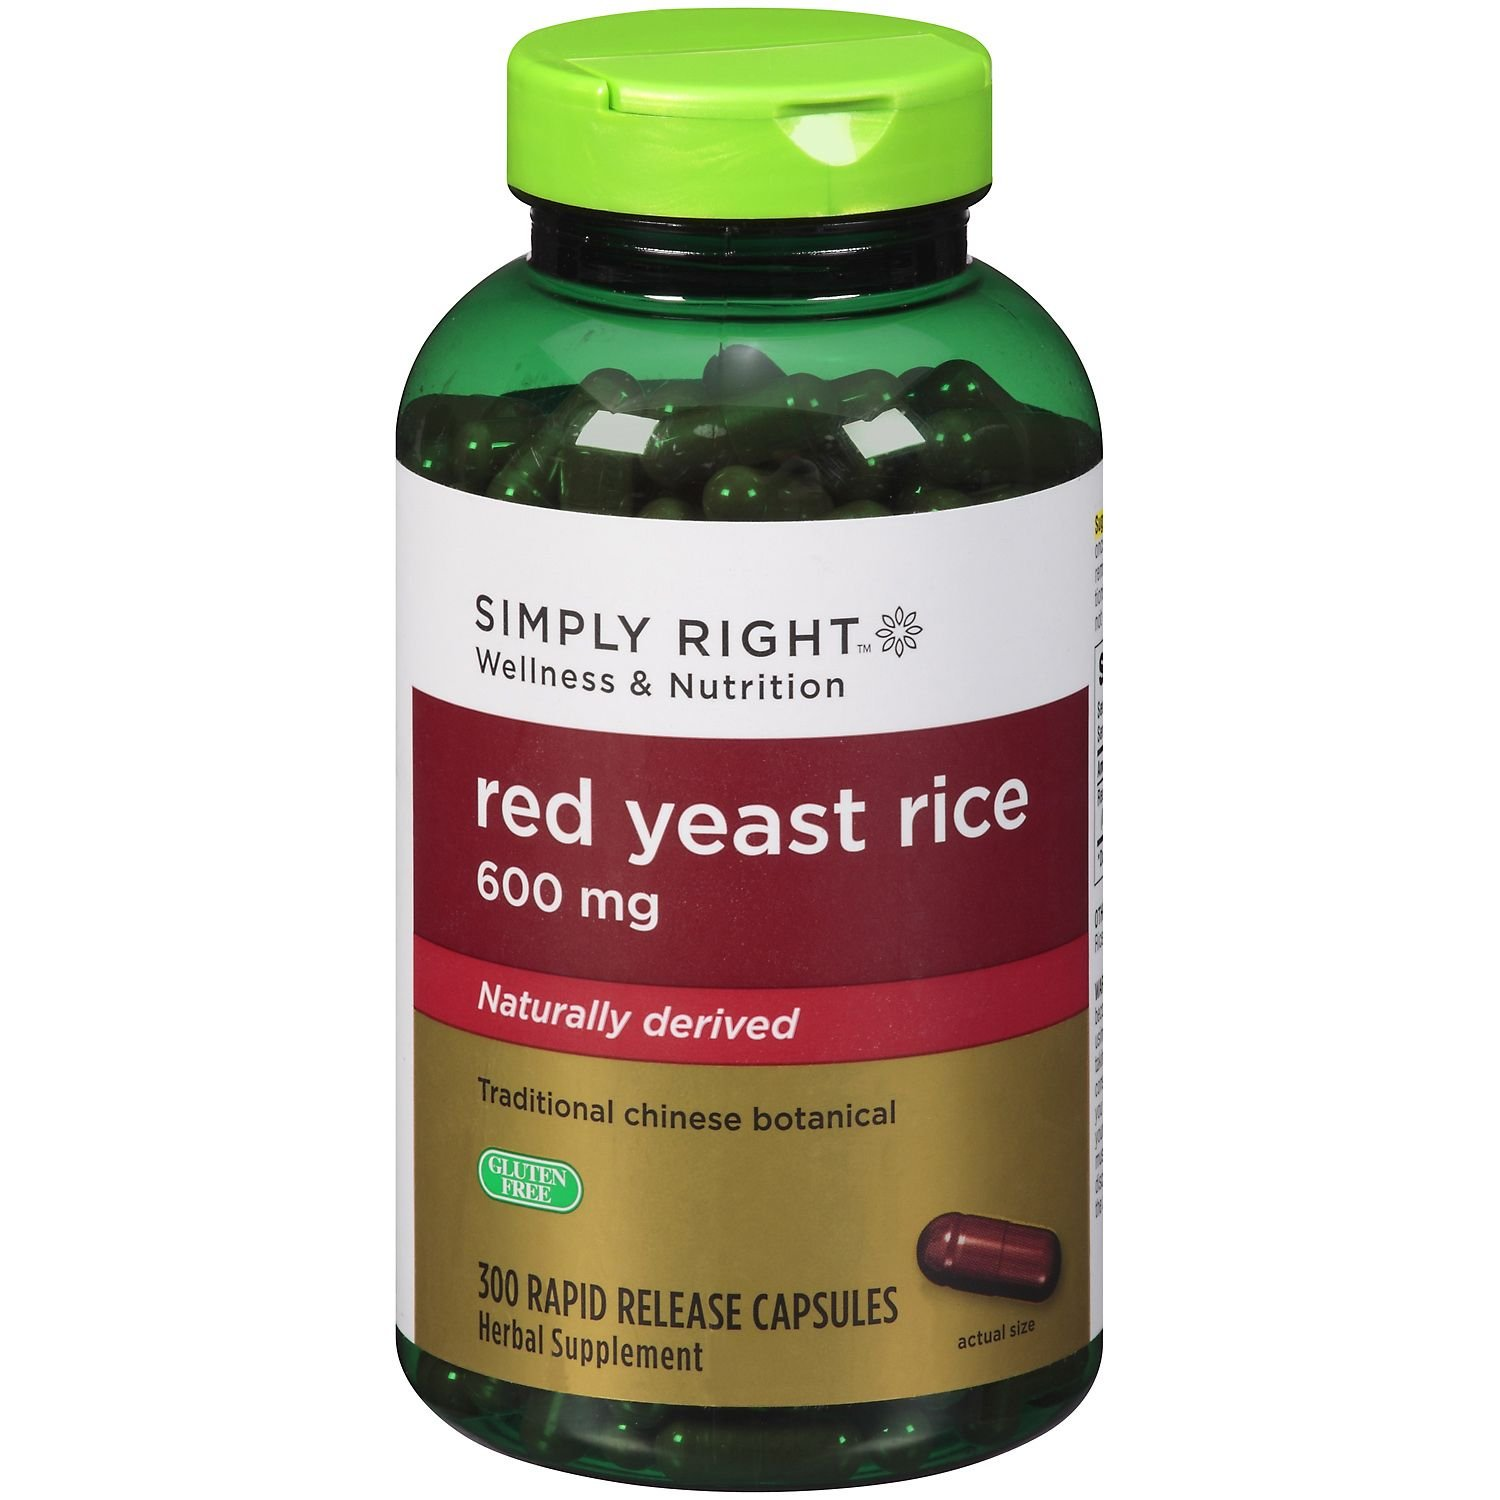 Simply Right Red Yeast Rice 600 mg Rapid Release, Naturally Derived (300 capsules)